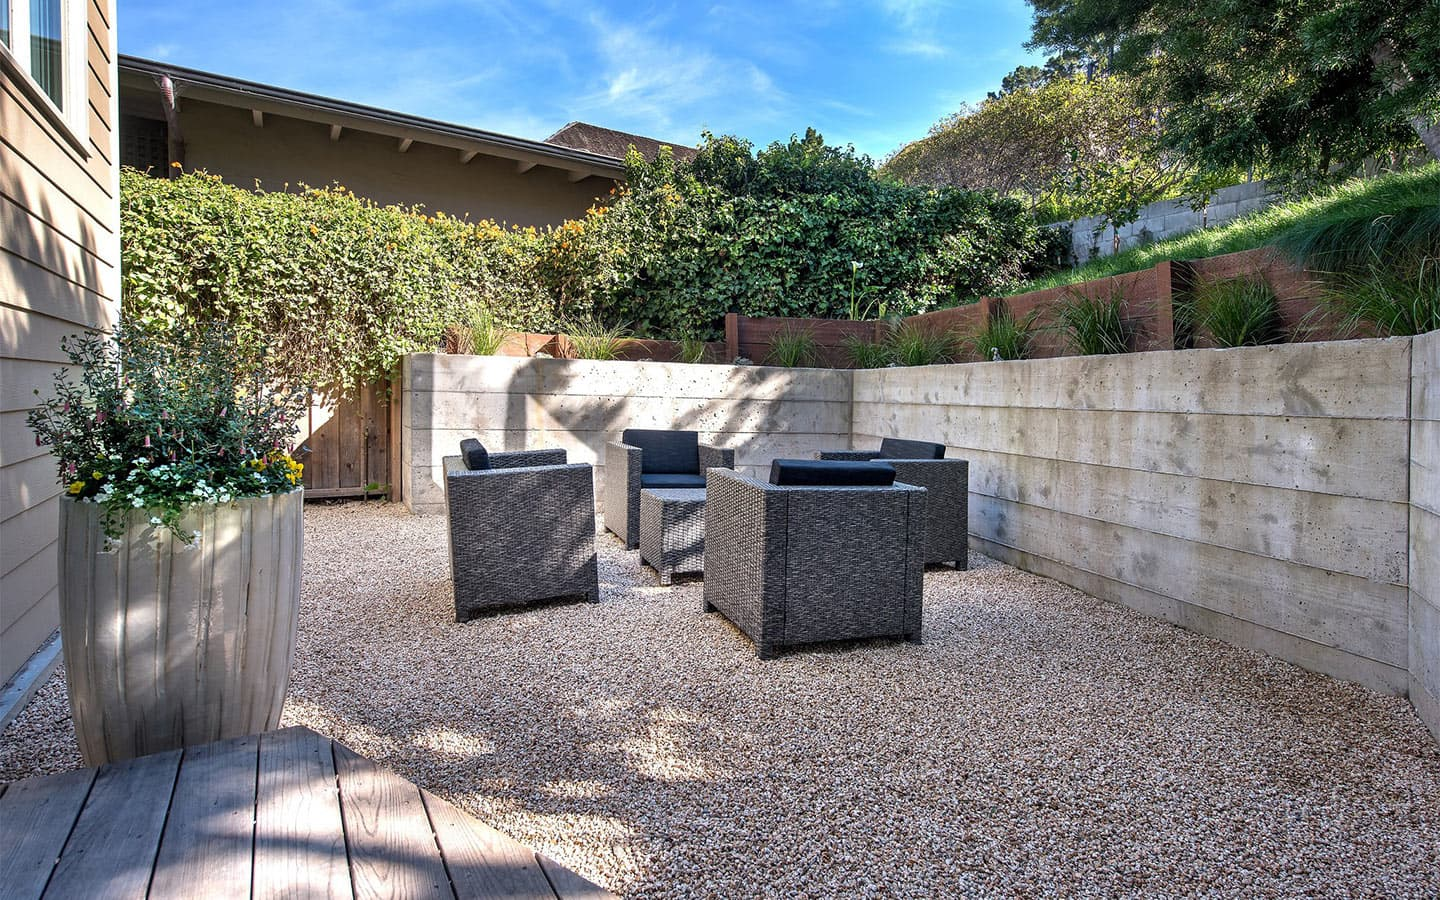 View of Outdoor Patio at Carmel Stonehouse